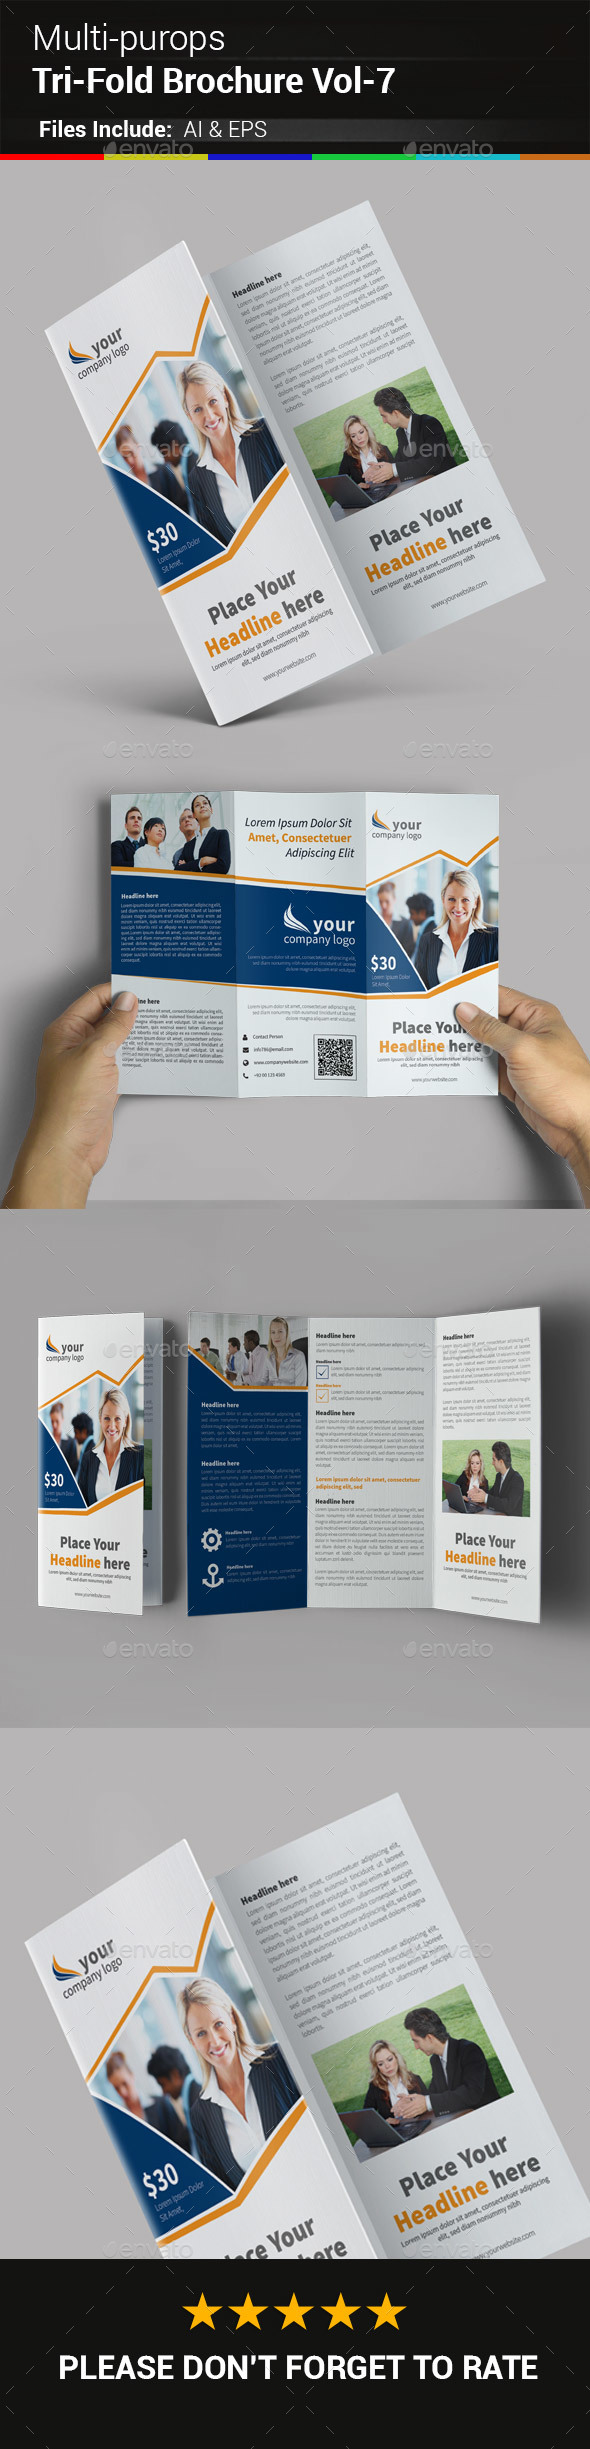 Multipurpose Business Tri-Fold Brochure Vol-7 - Corporate Brochures